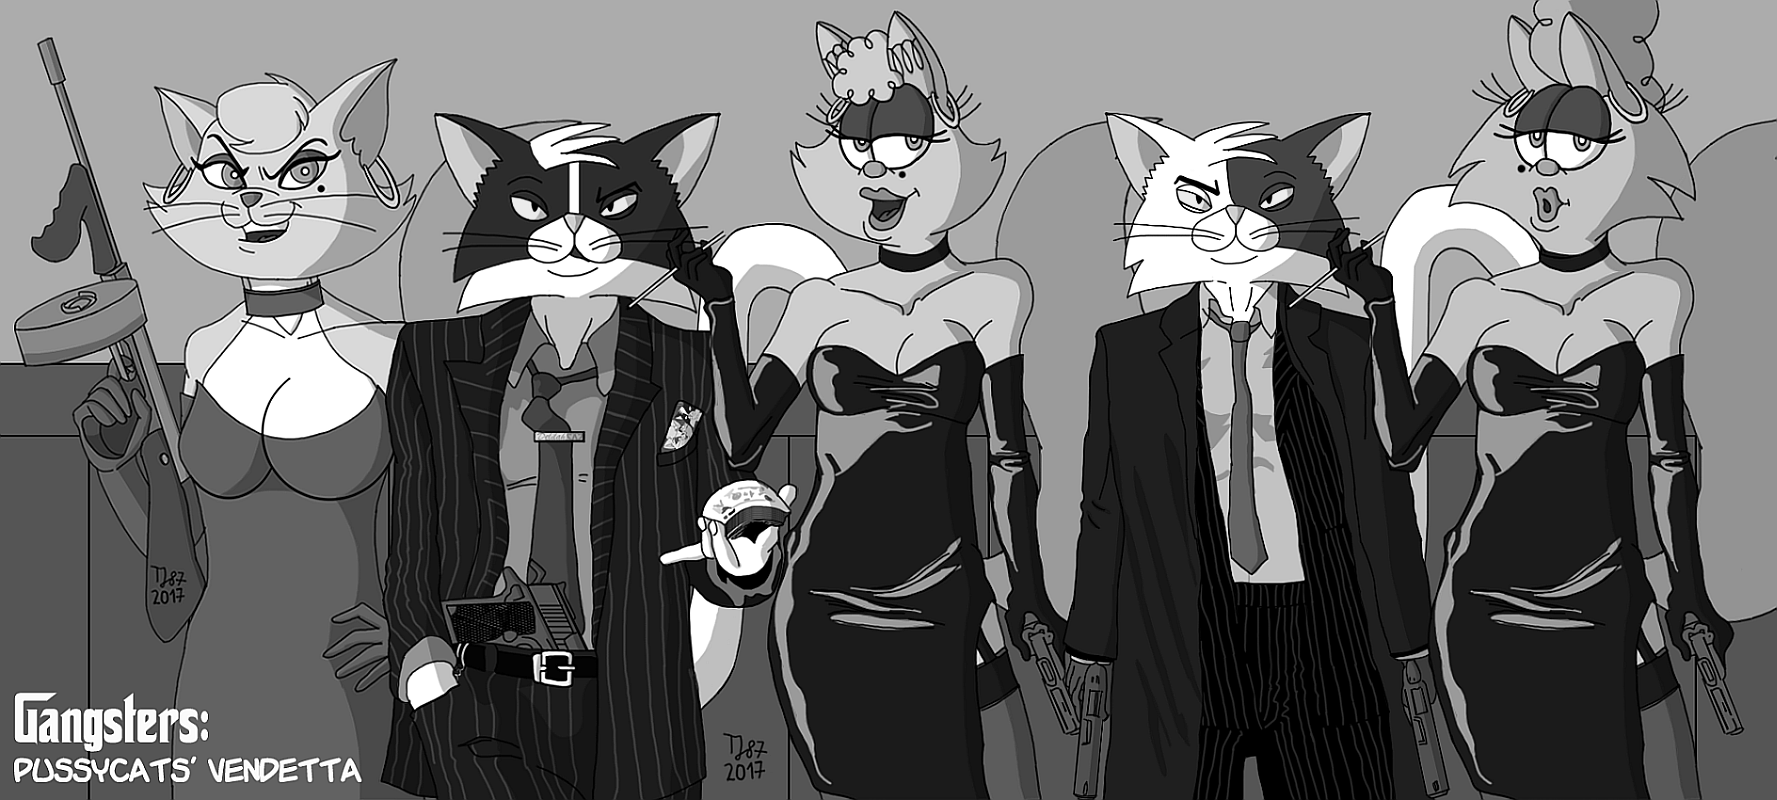 The Pussycats' Vendetta: Family Picture (B&W) by TeeJay87